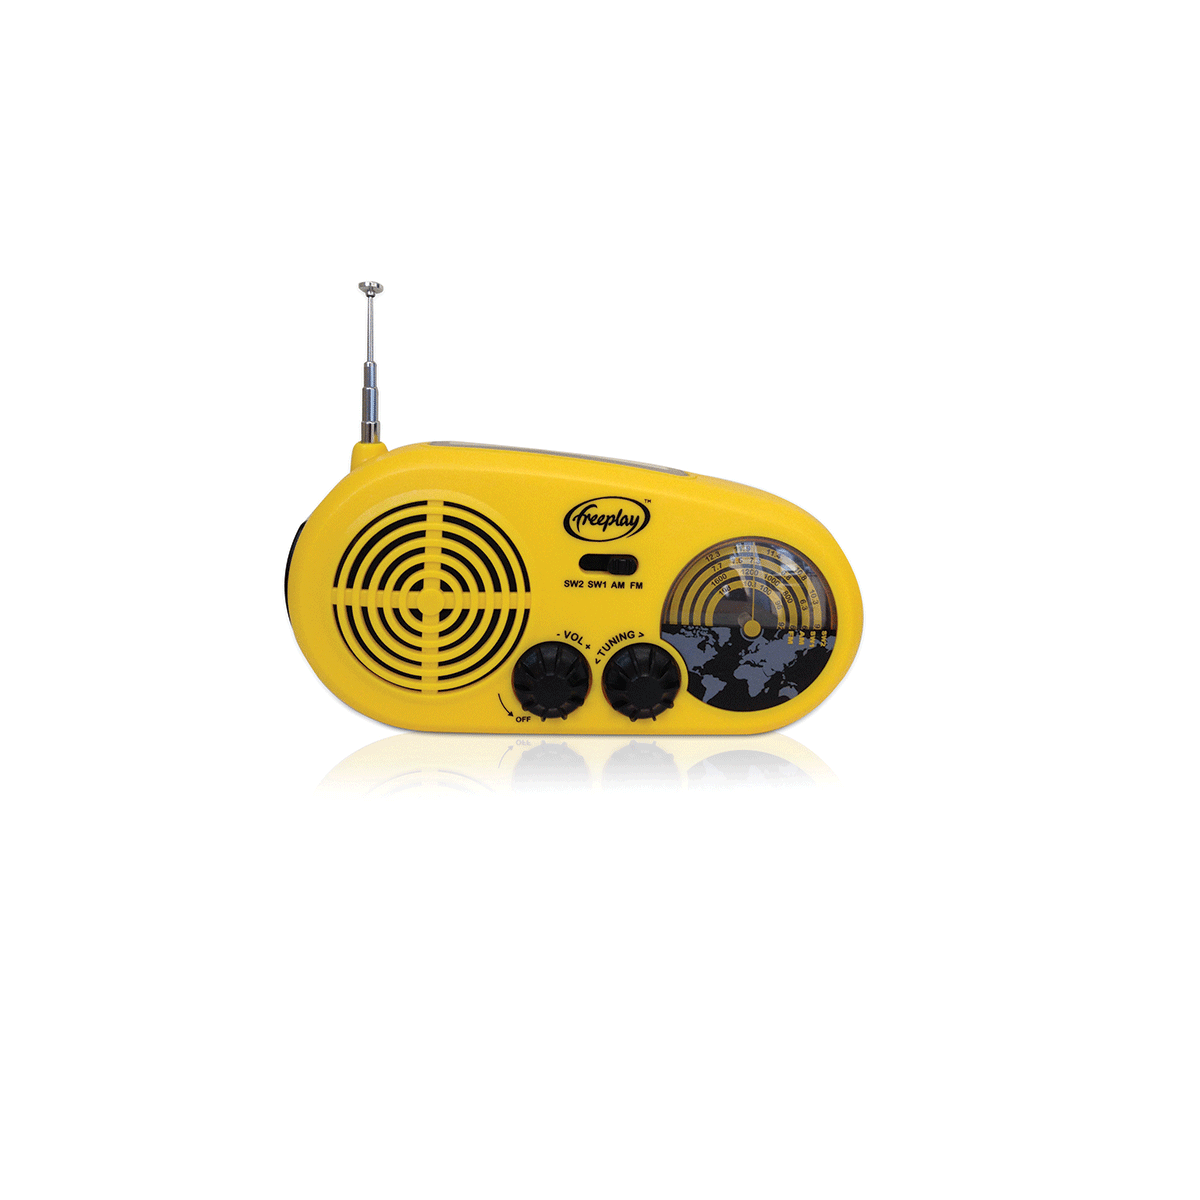 Hand-Held Radio,Multiband,Solar,Wind-Up